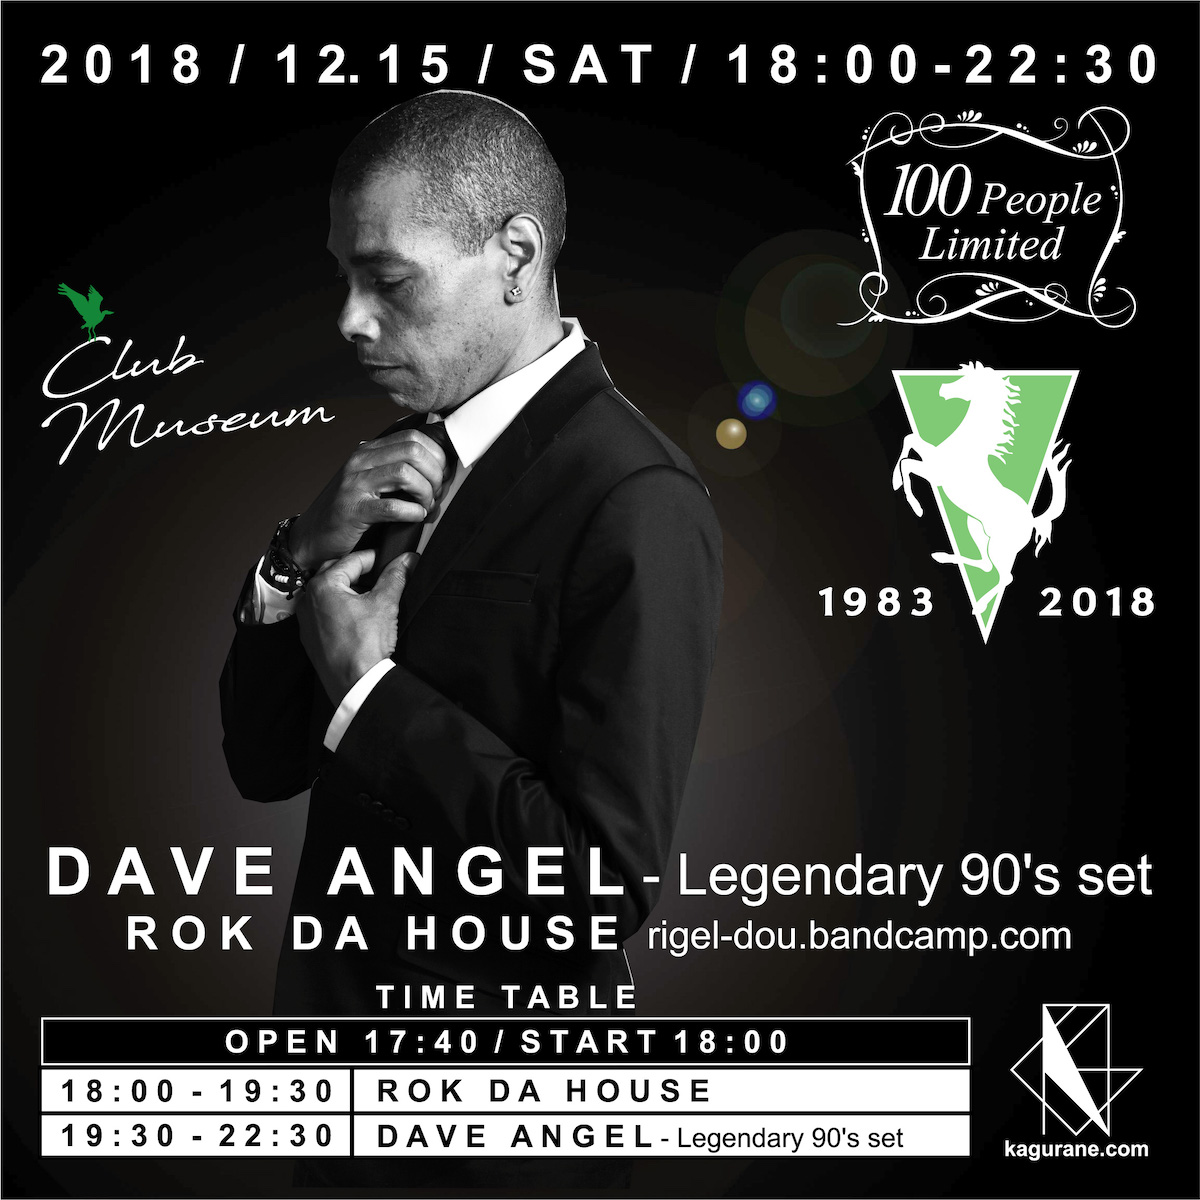 Club museum 2018-2019 Dave Angel